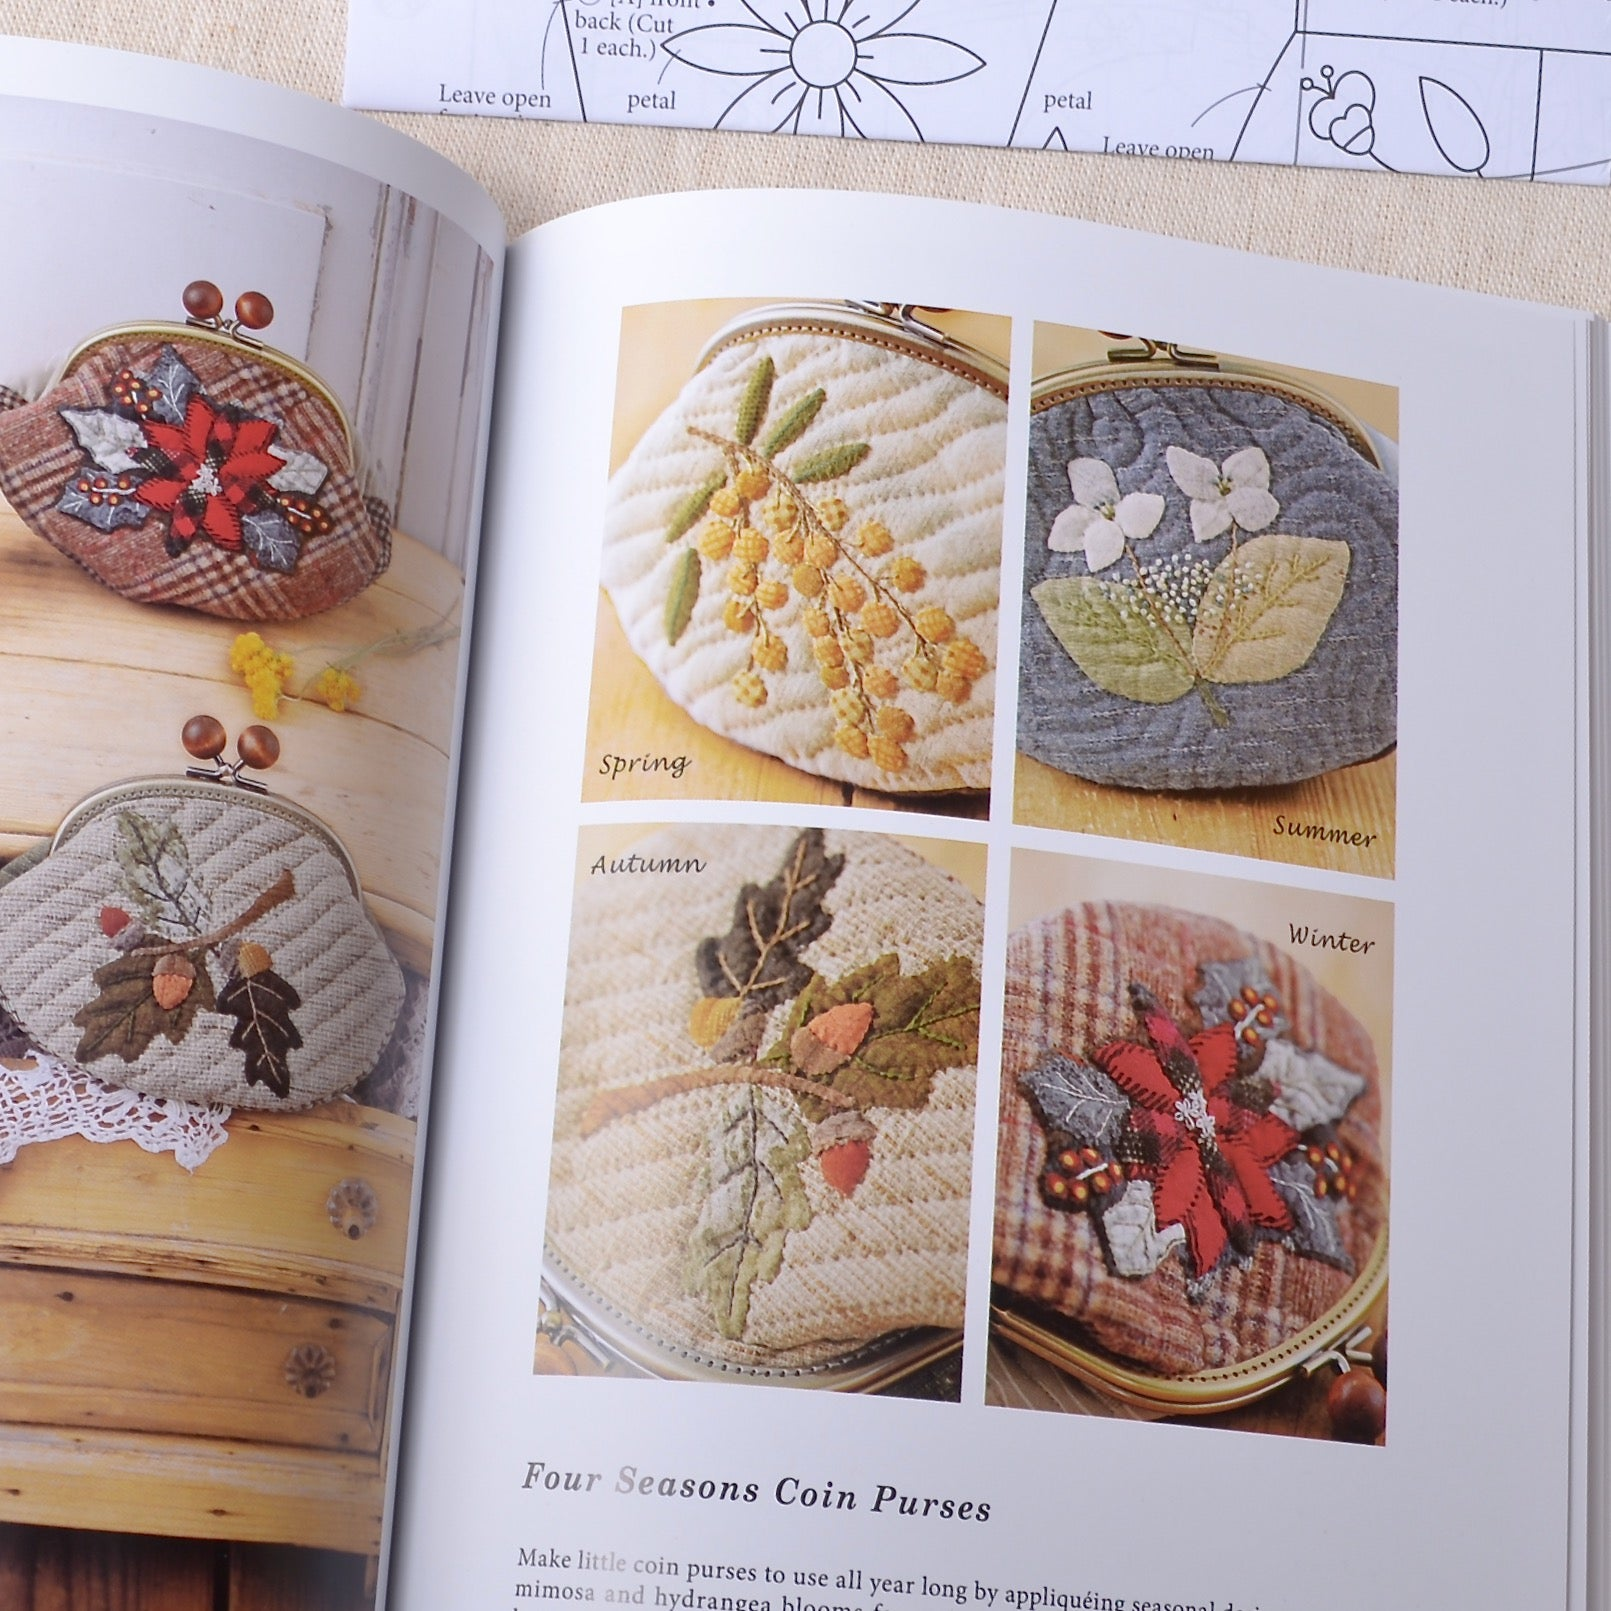 Yoko Saito: Books & Patterns